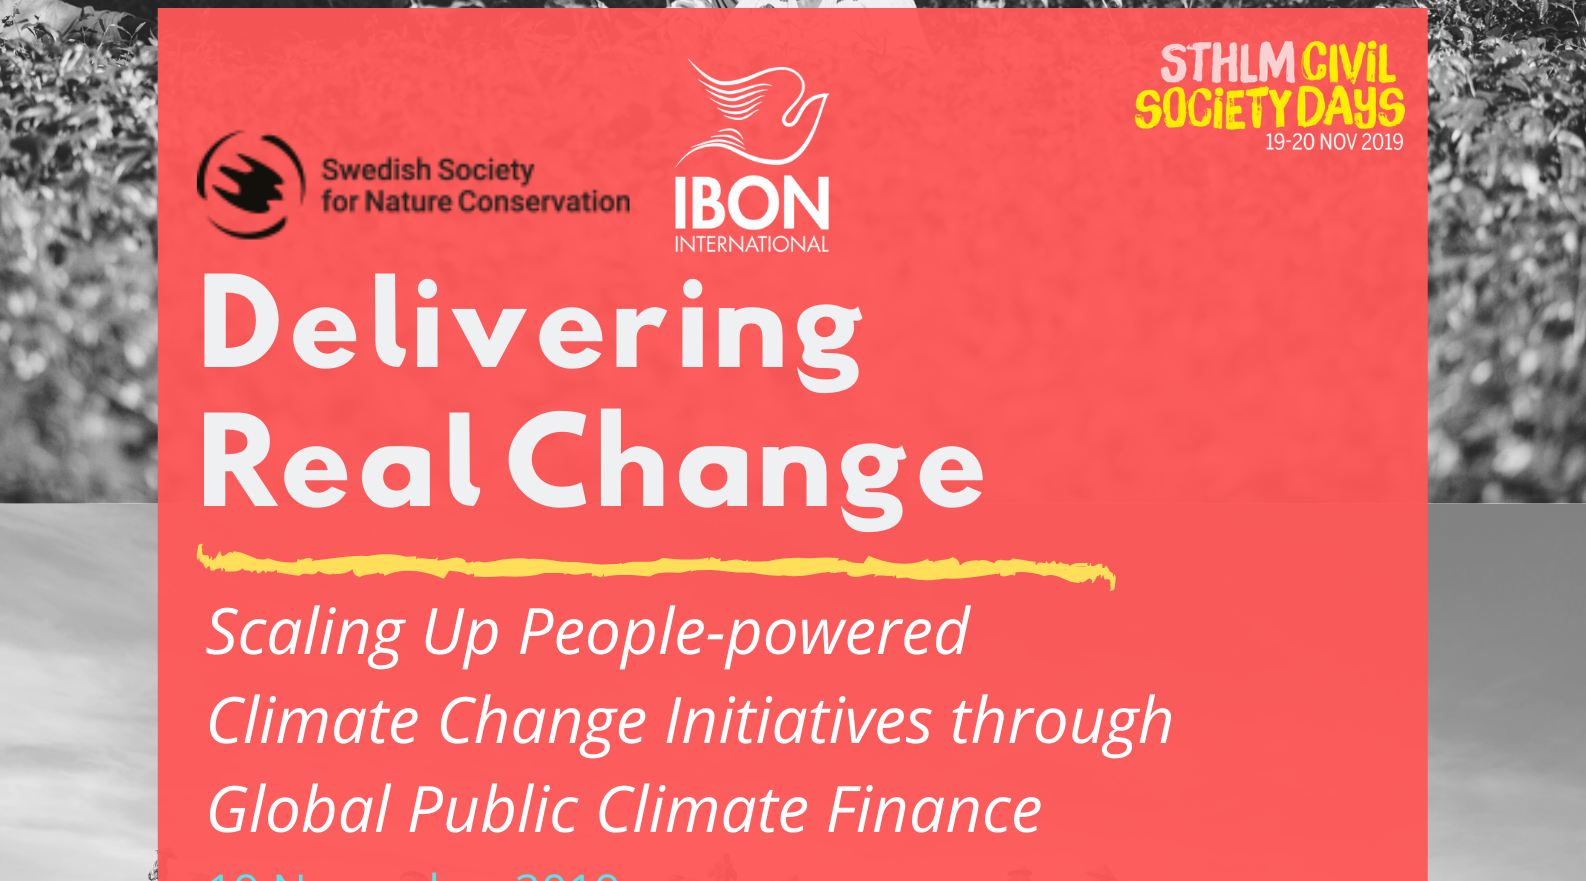 Delivering Real Change: Scaling Up People-powered, Climate Change Initiatives through Global Public Climate Finance